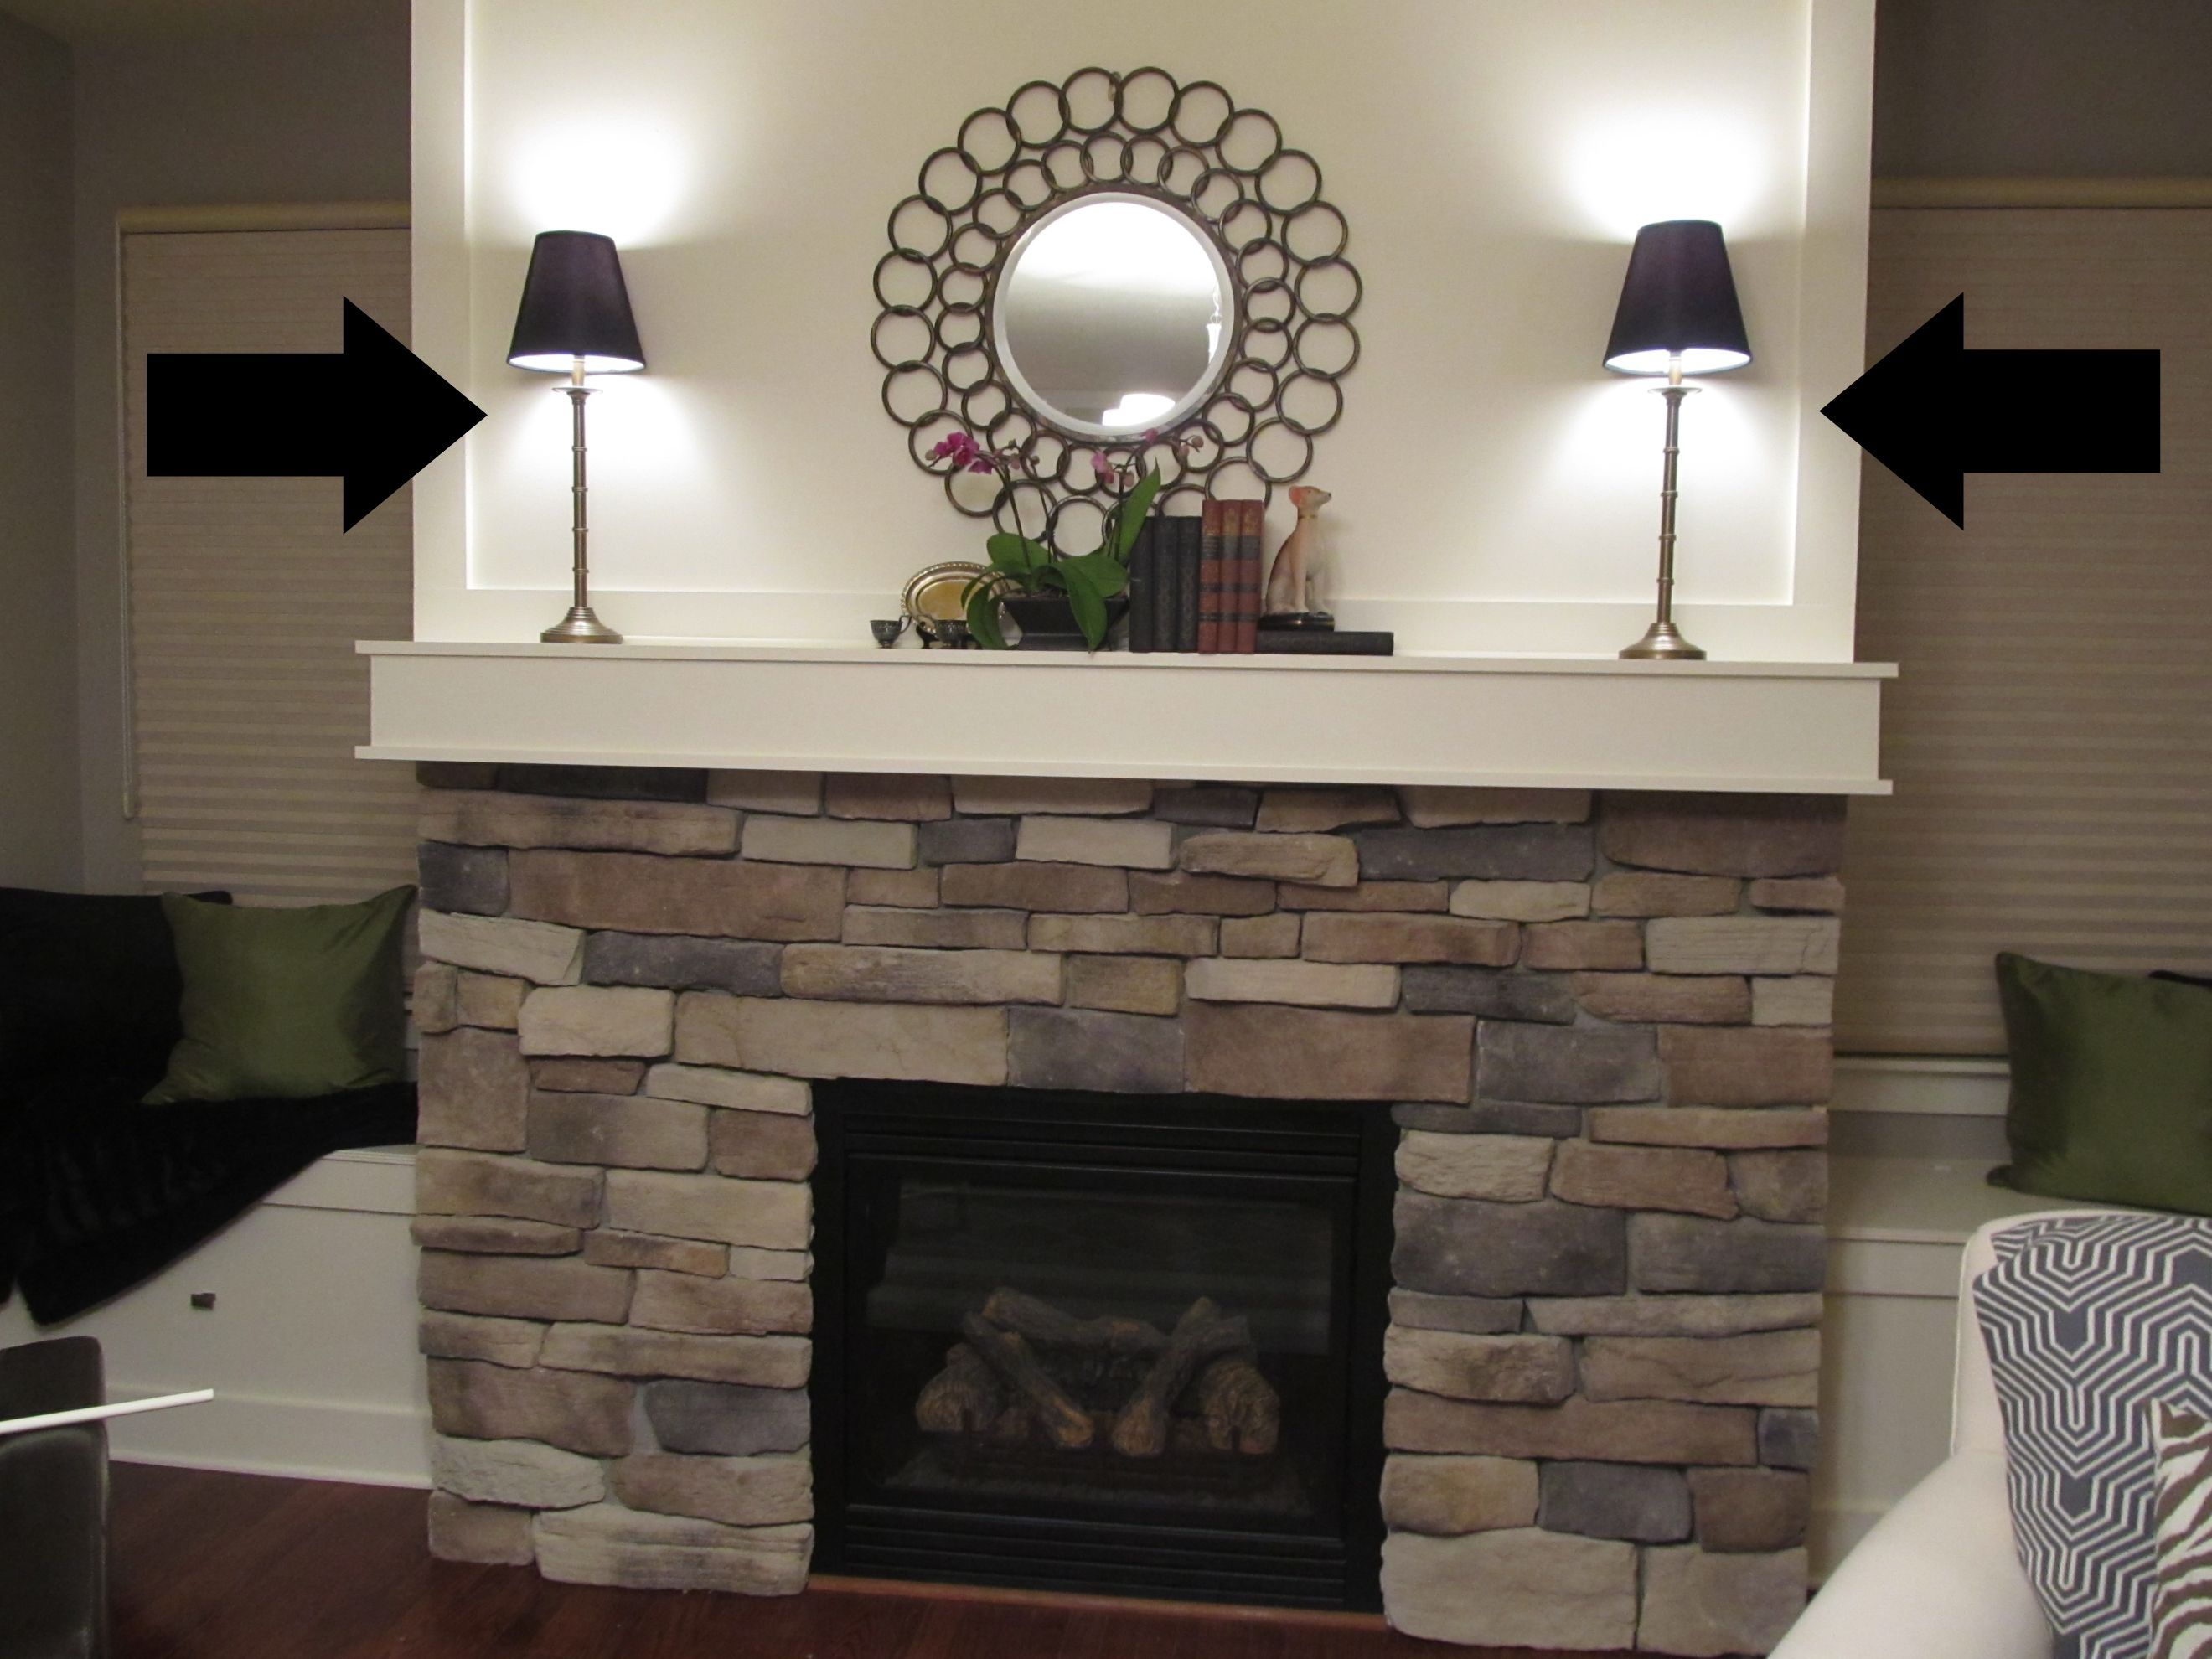 Stone fireplace decorating ideas fireplace mantel decor featured